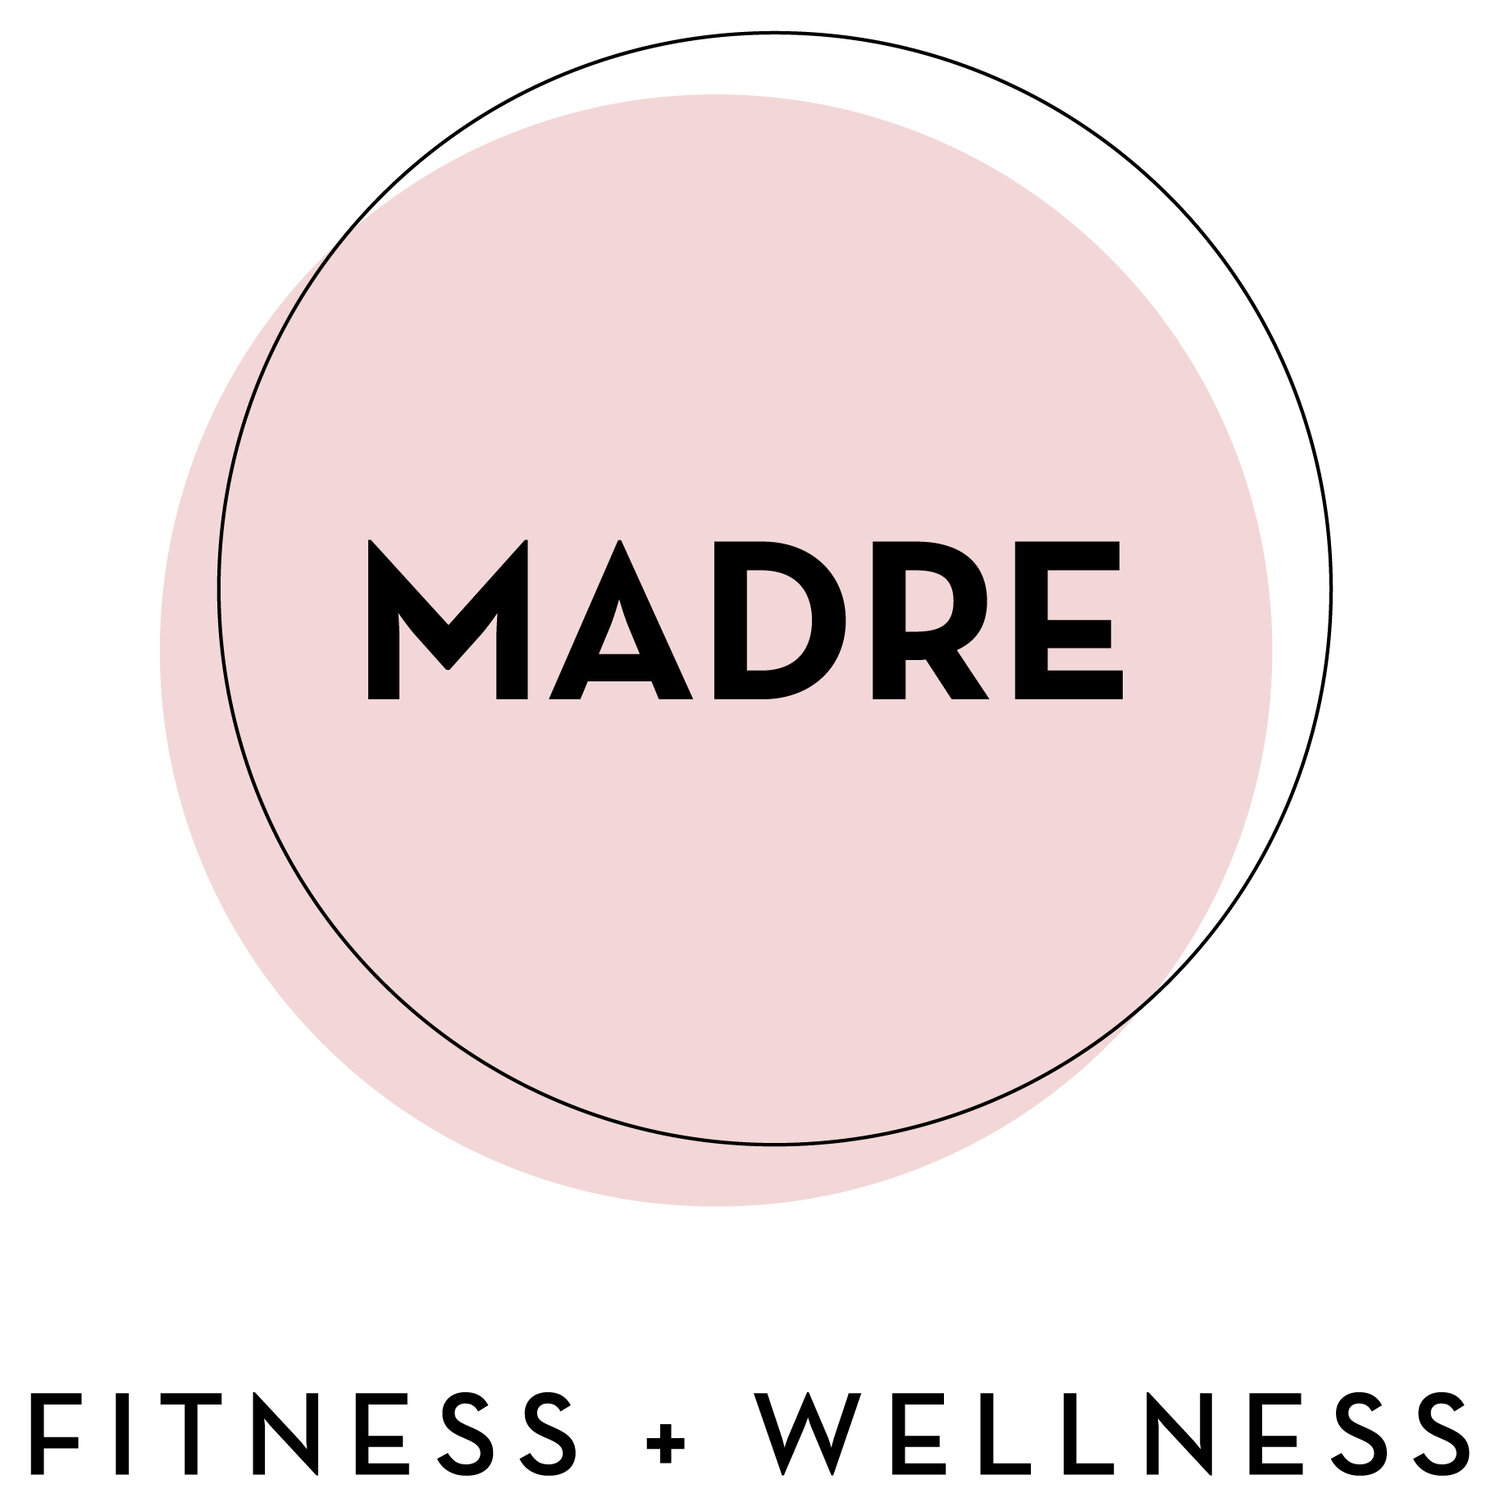 MADRE FITNESS + WELLNESS